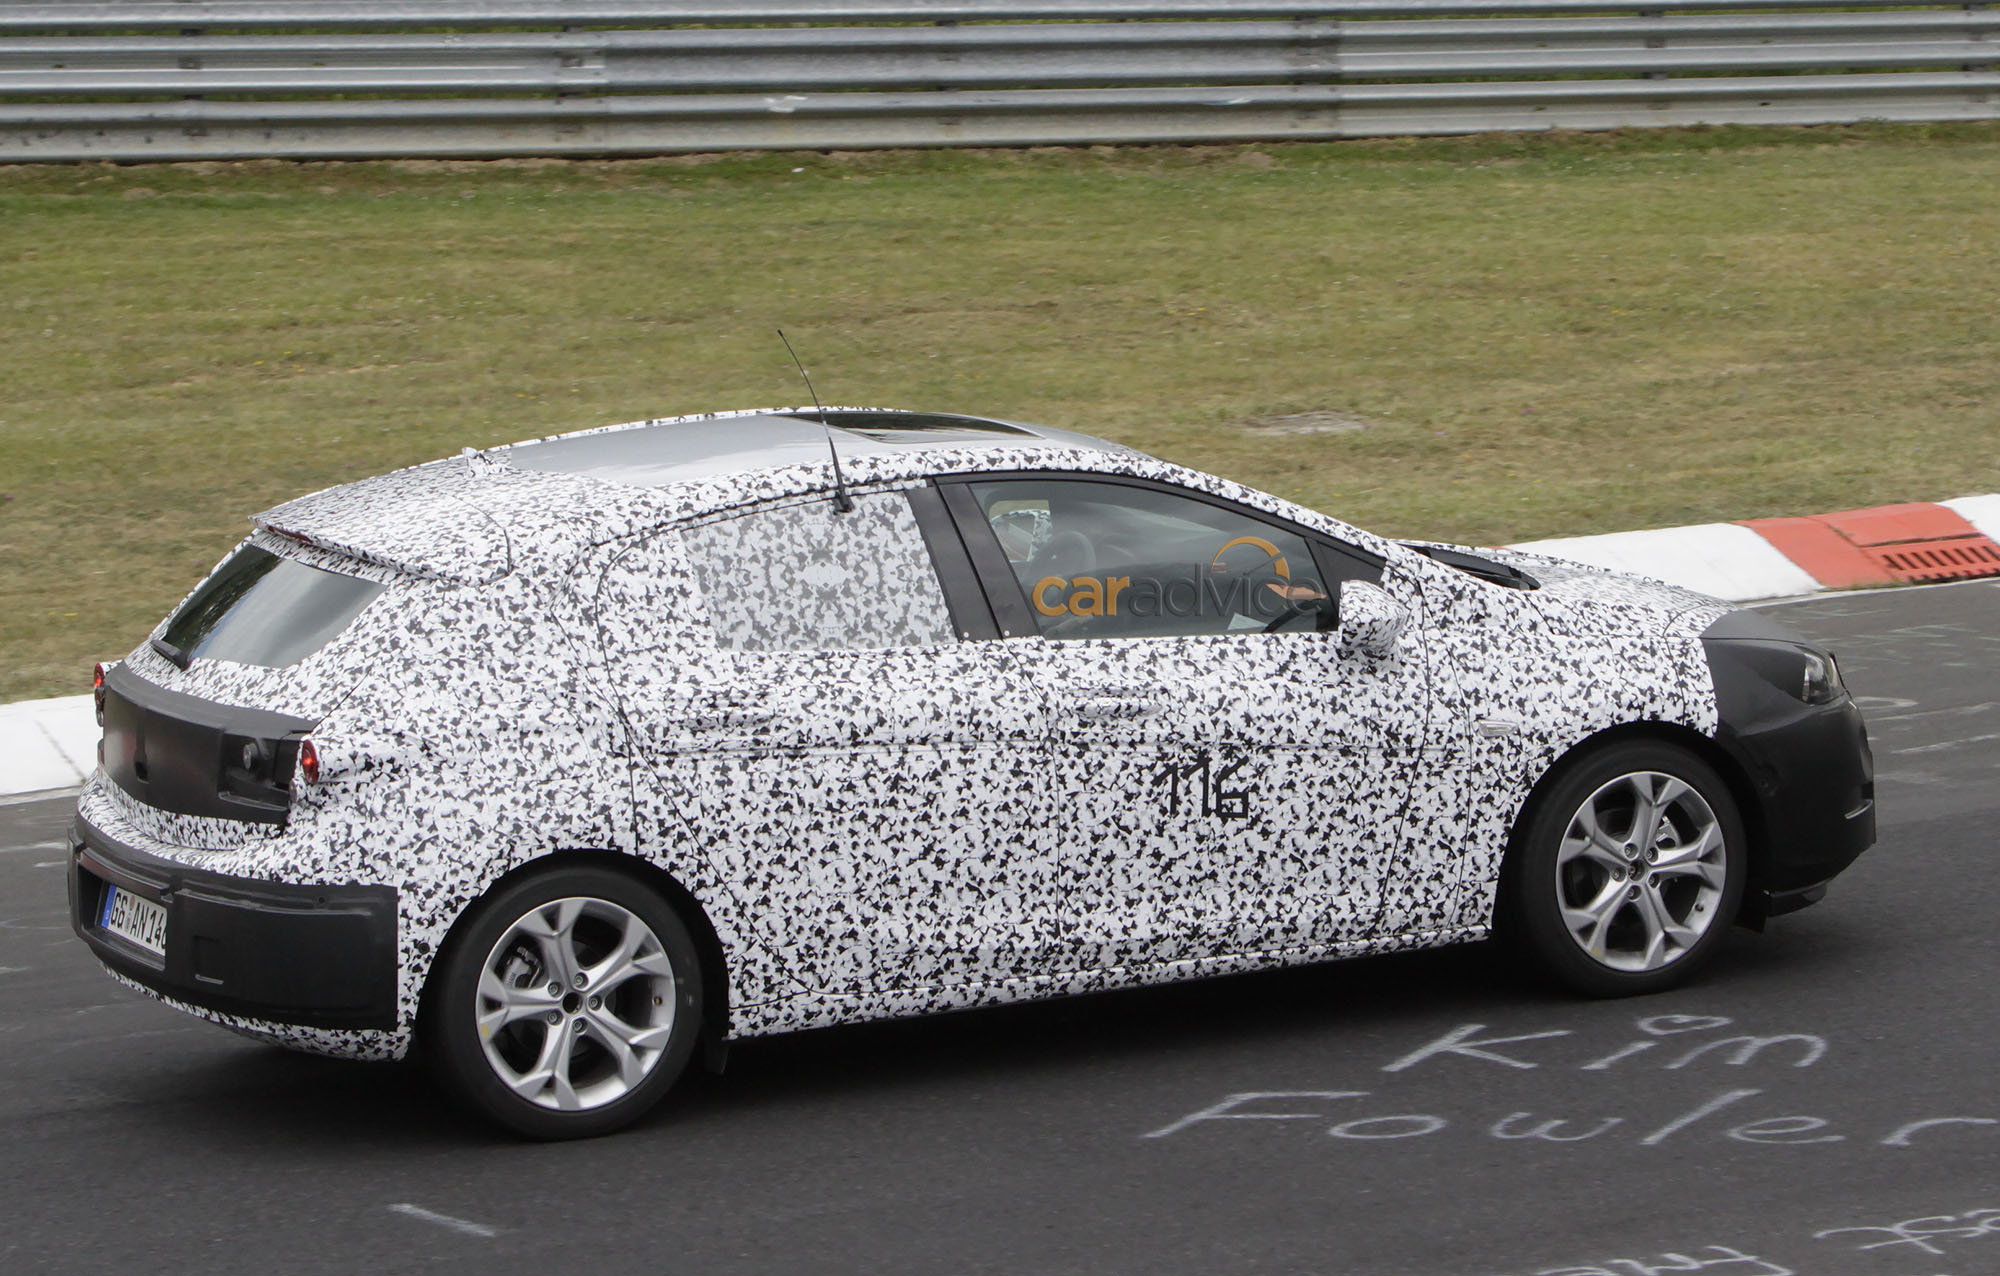 2015 Opel Astra interior spied at Nurburgring - photos | CarAdvice